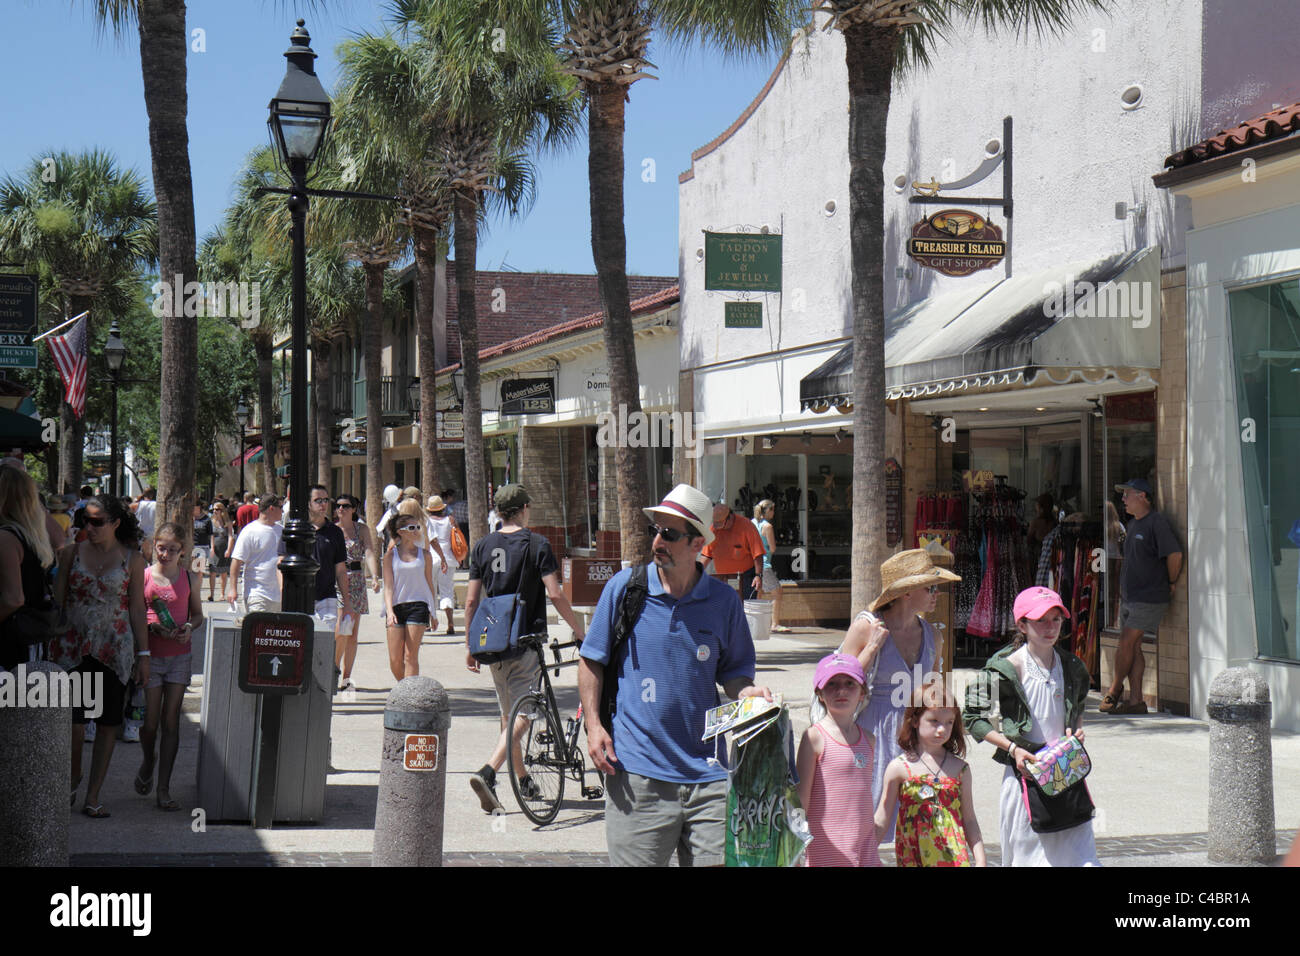 7163bd6ed St. Saint Augustine Florida St. George Street pedestrian mall shopping  dining walking families -